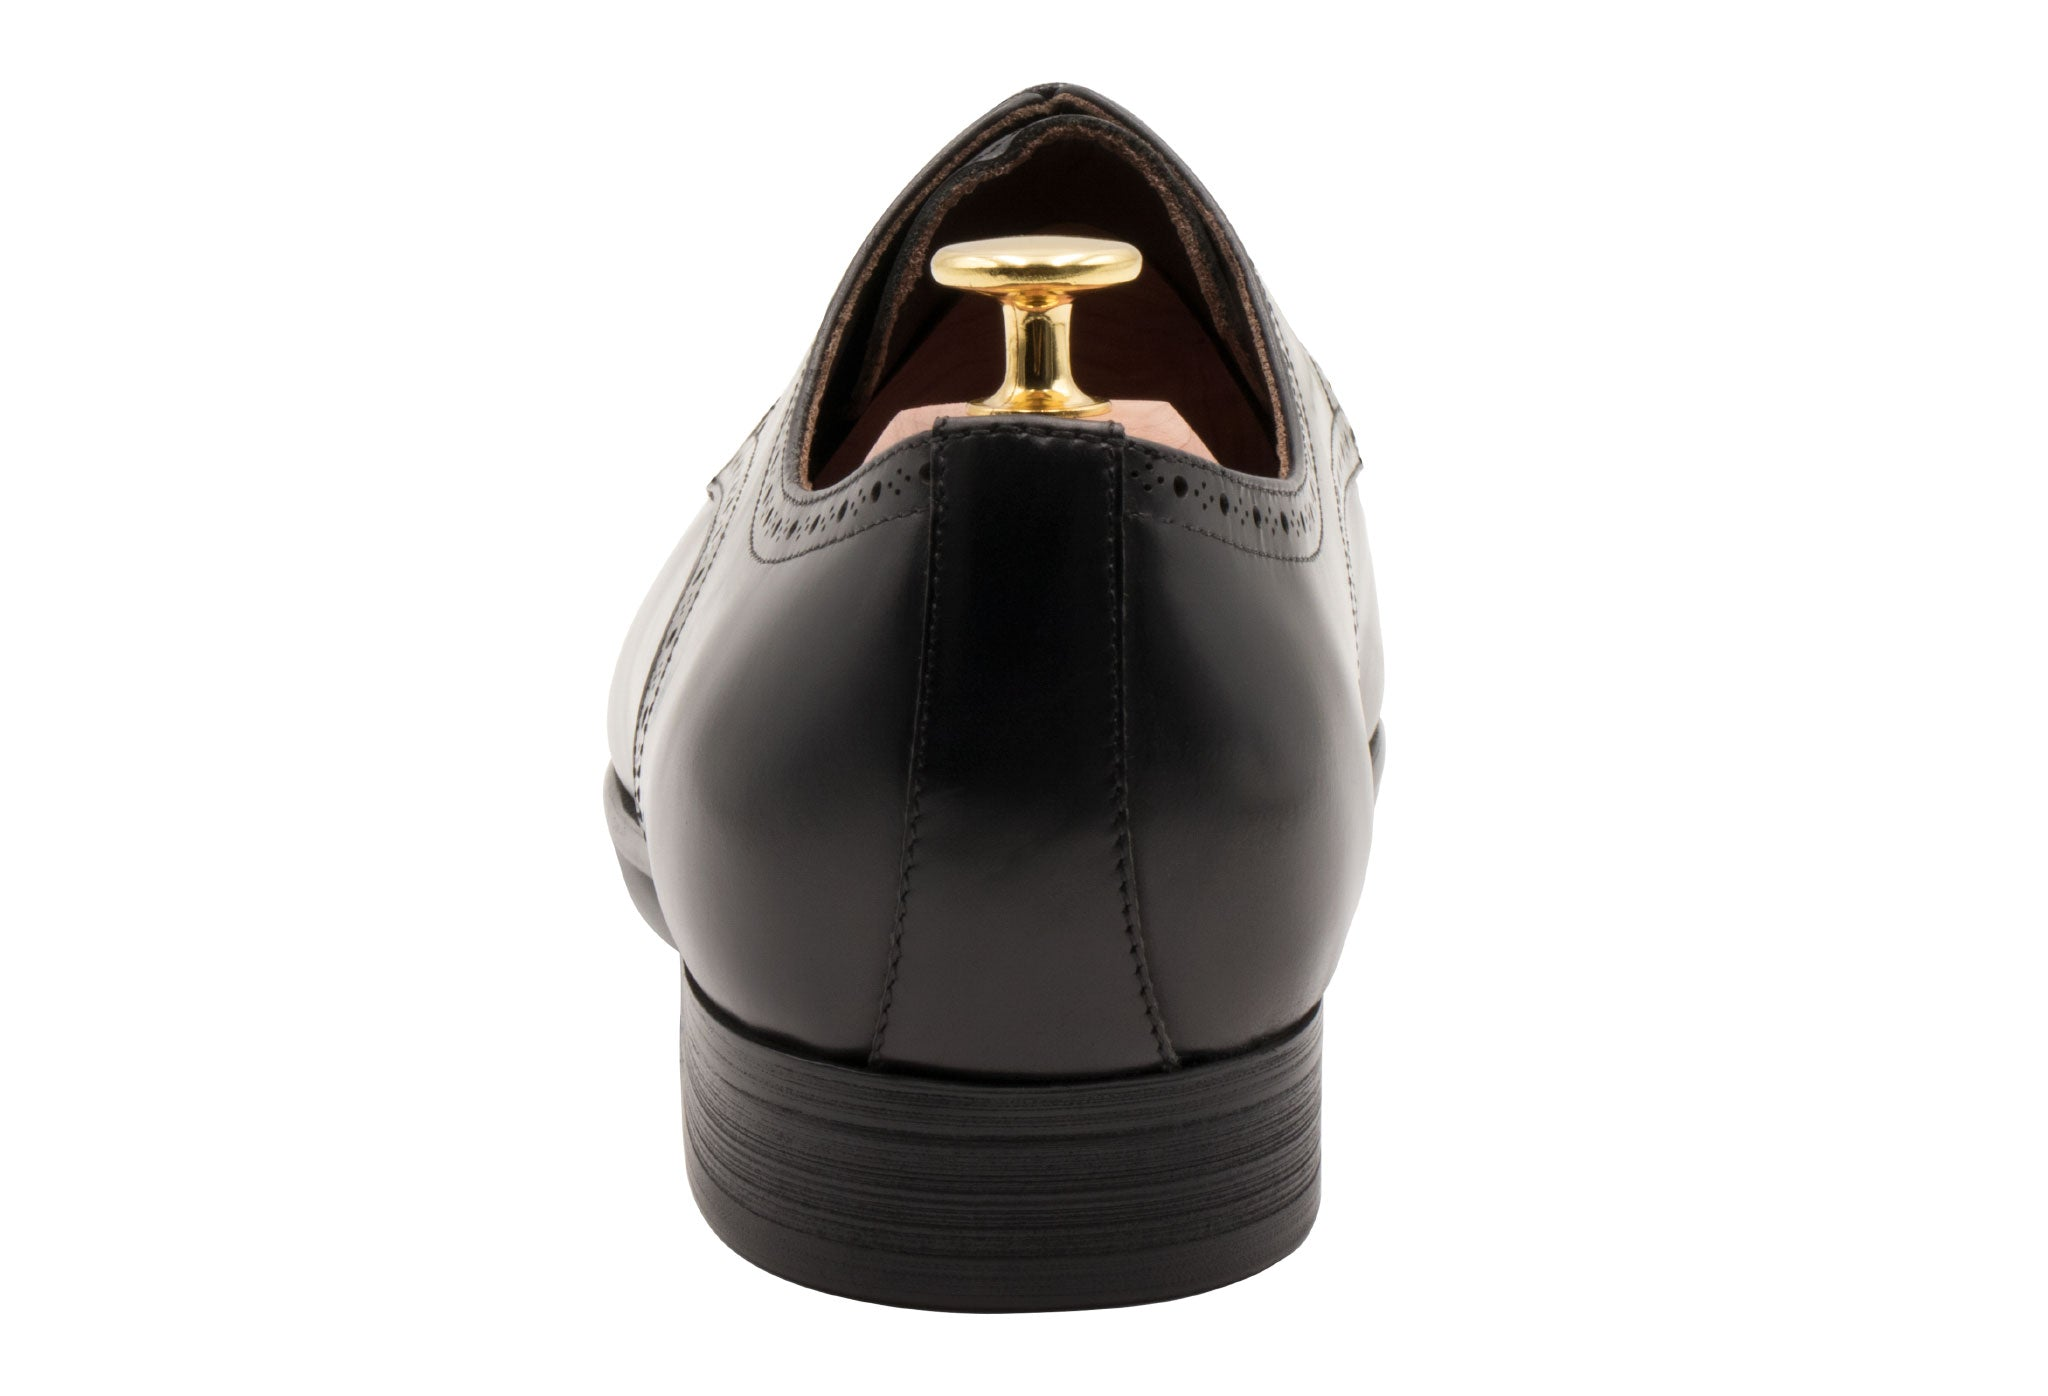 Olivos Medallion Black Derby Leather Shoes